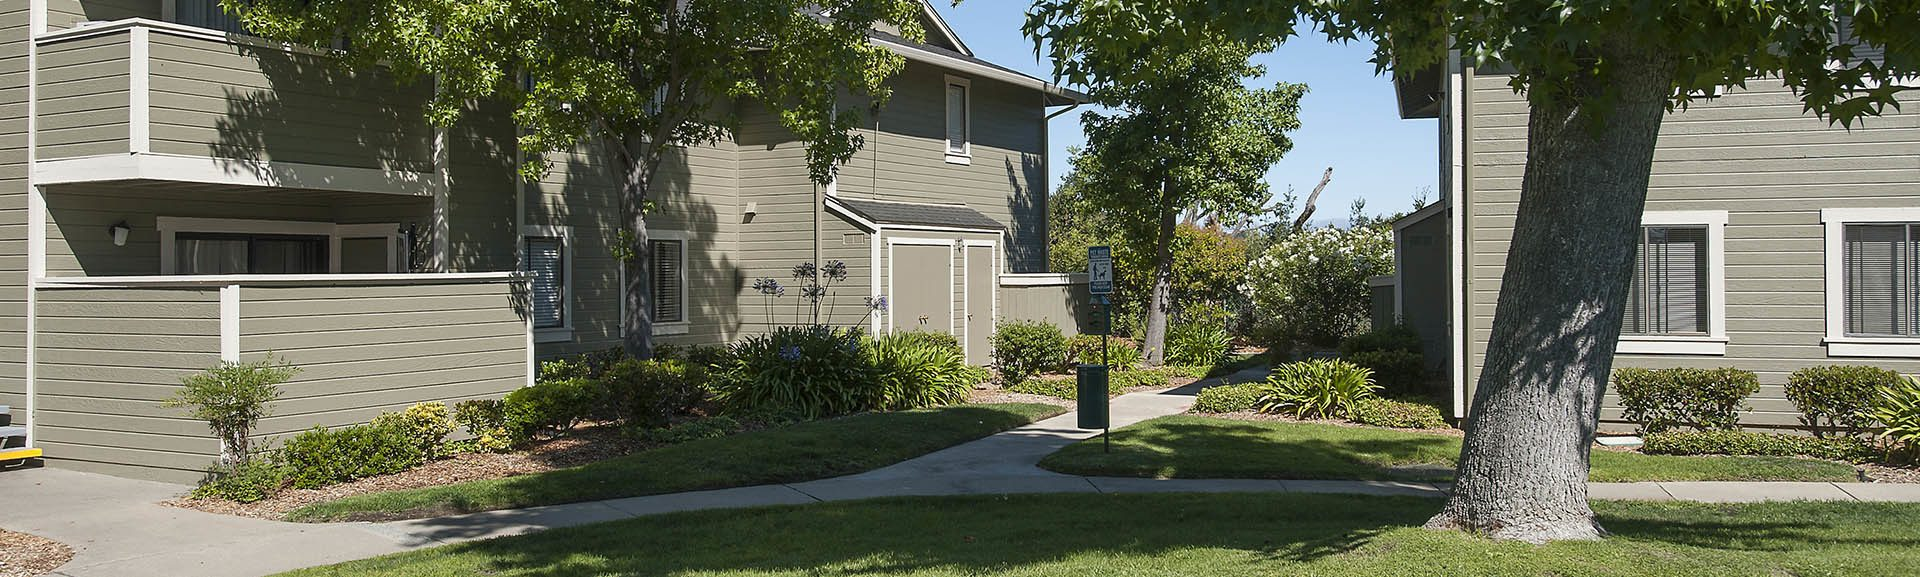 Learn about our neighborhood at Ridgecrest Apartment Homes in Martinez, CA on our website